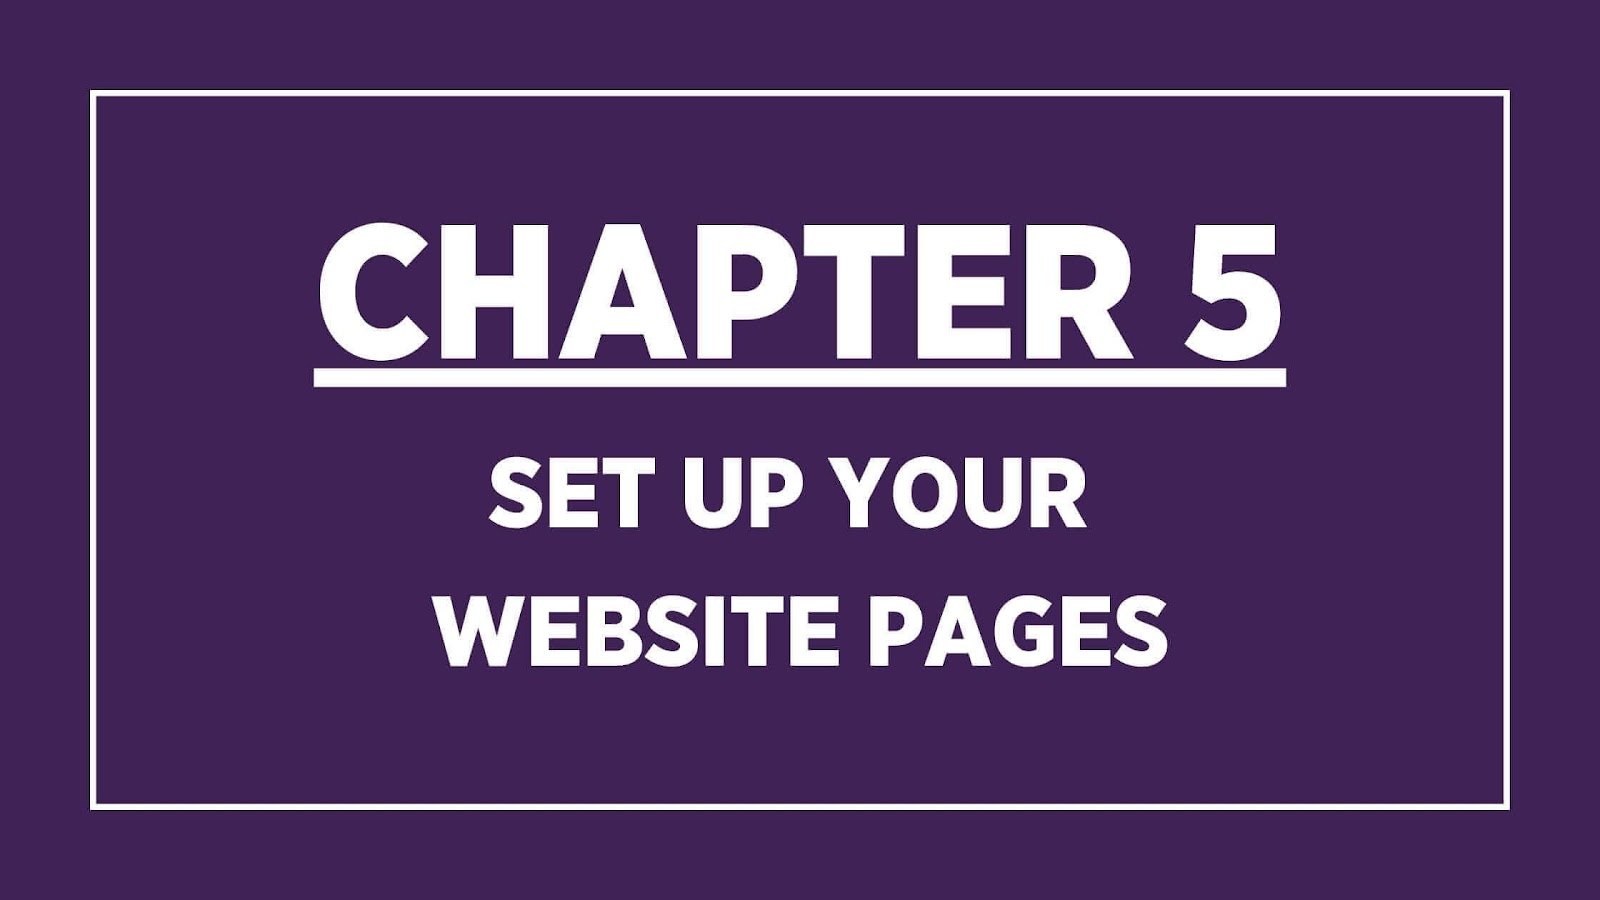 Chapter 5 banner set up your website pages